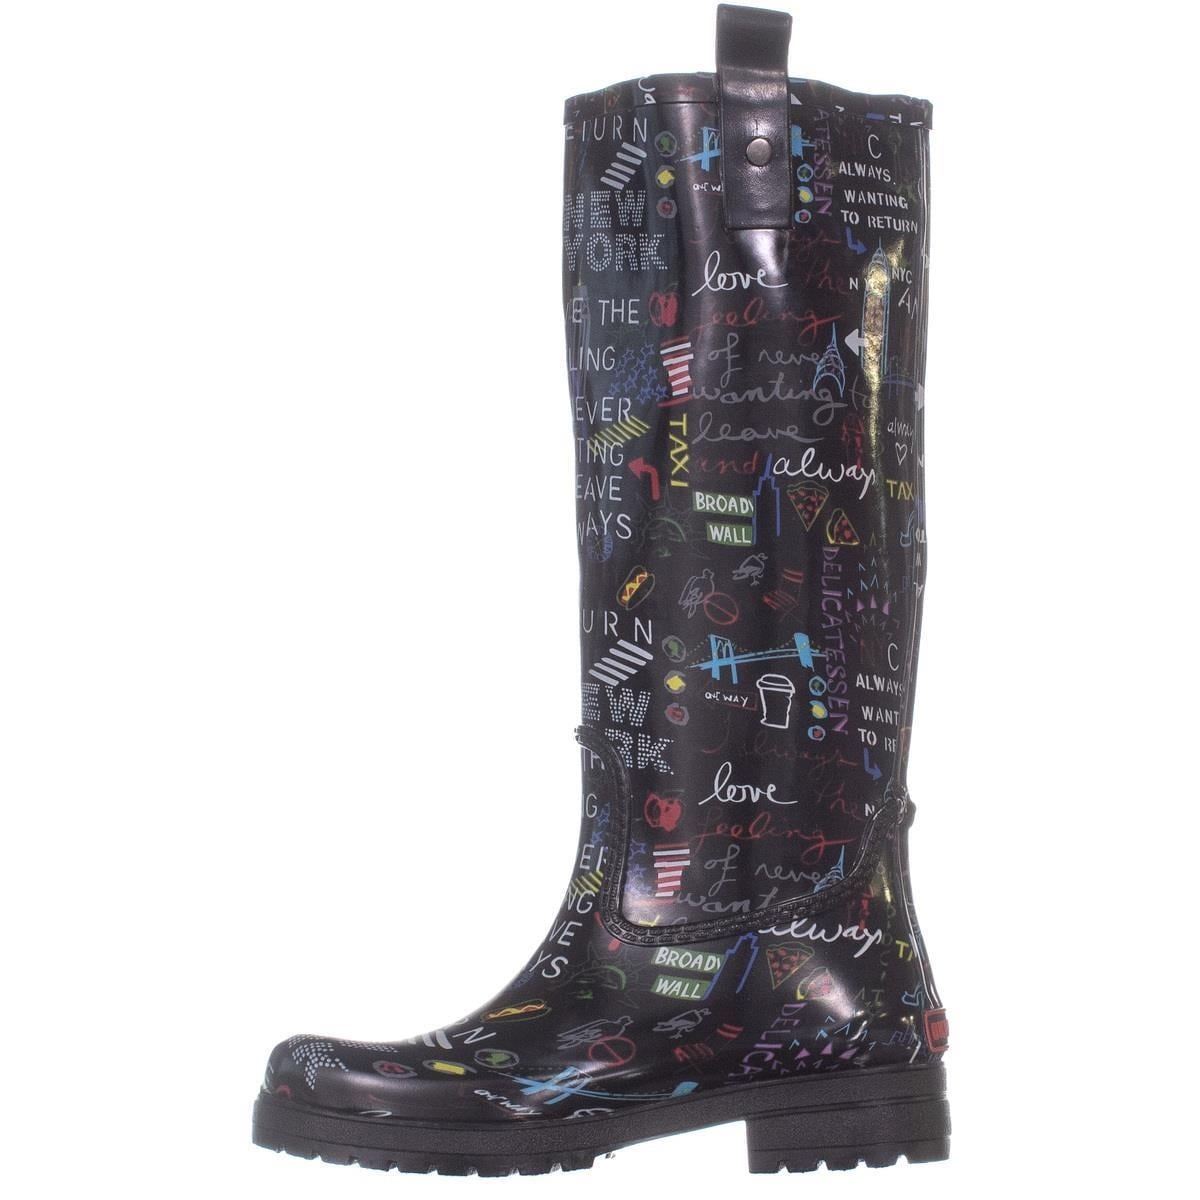 0fda8850f0de Shop DKNY Niagara Knee High Rain Boots